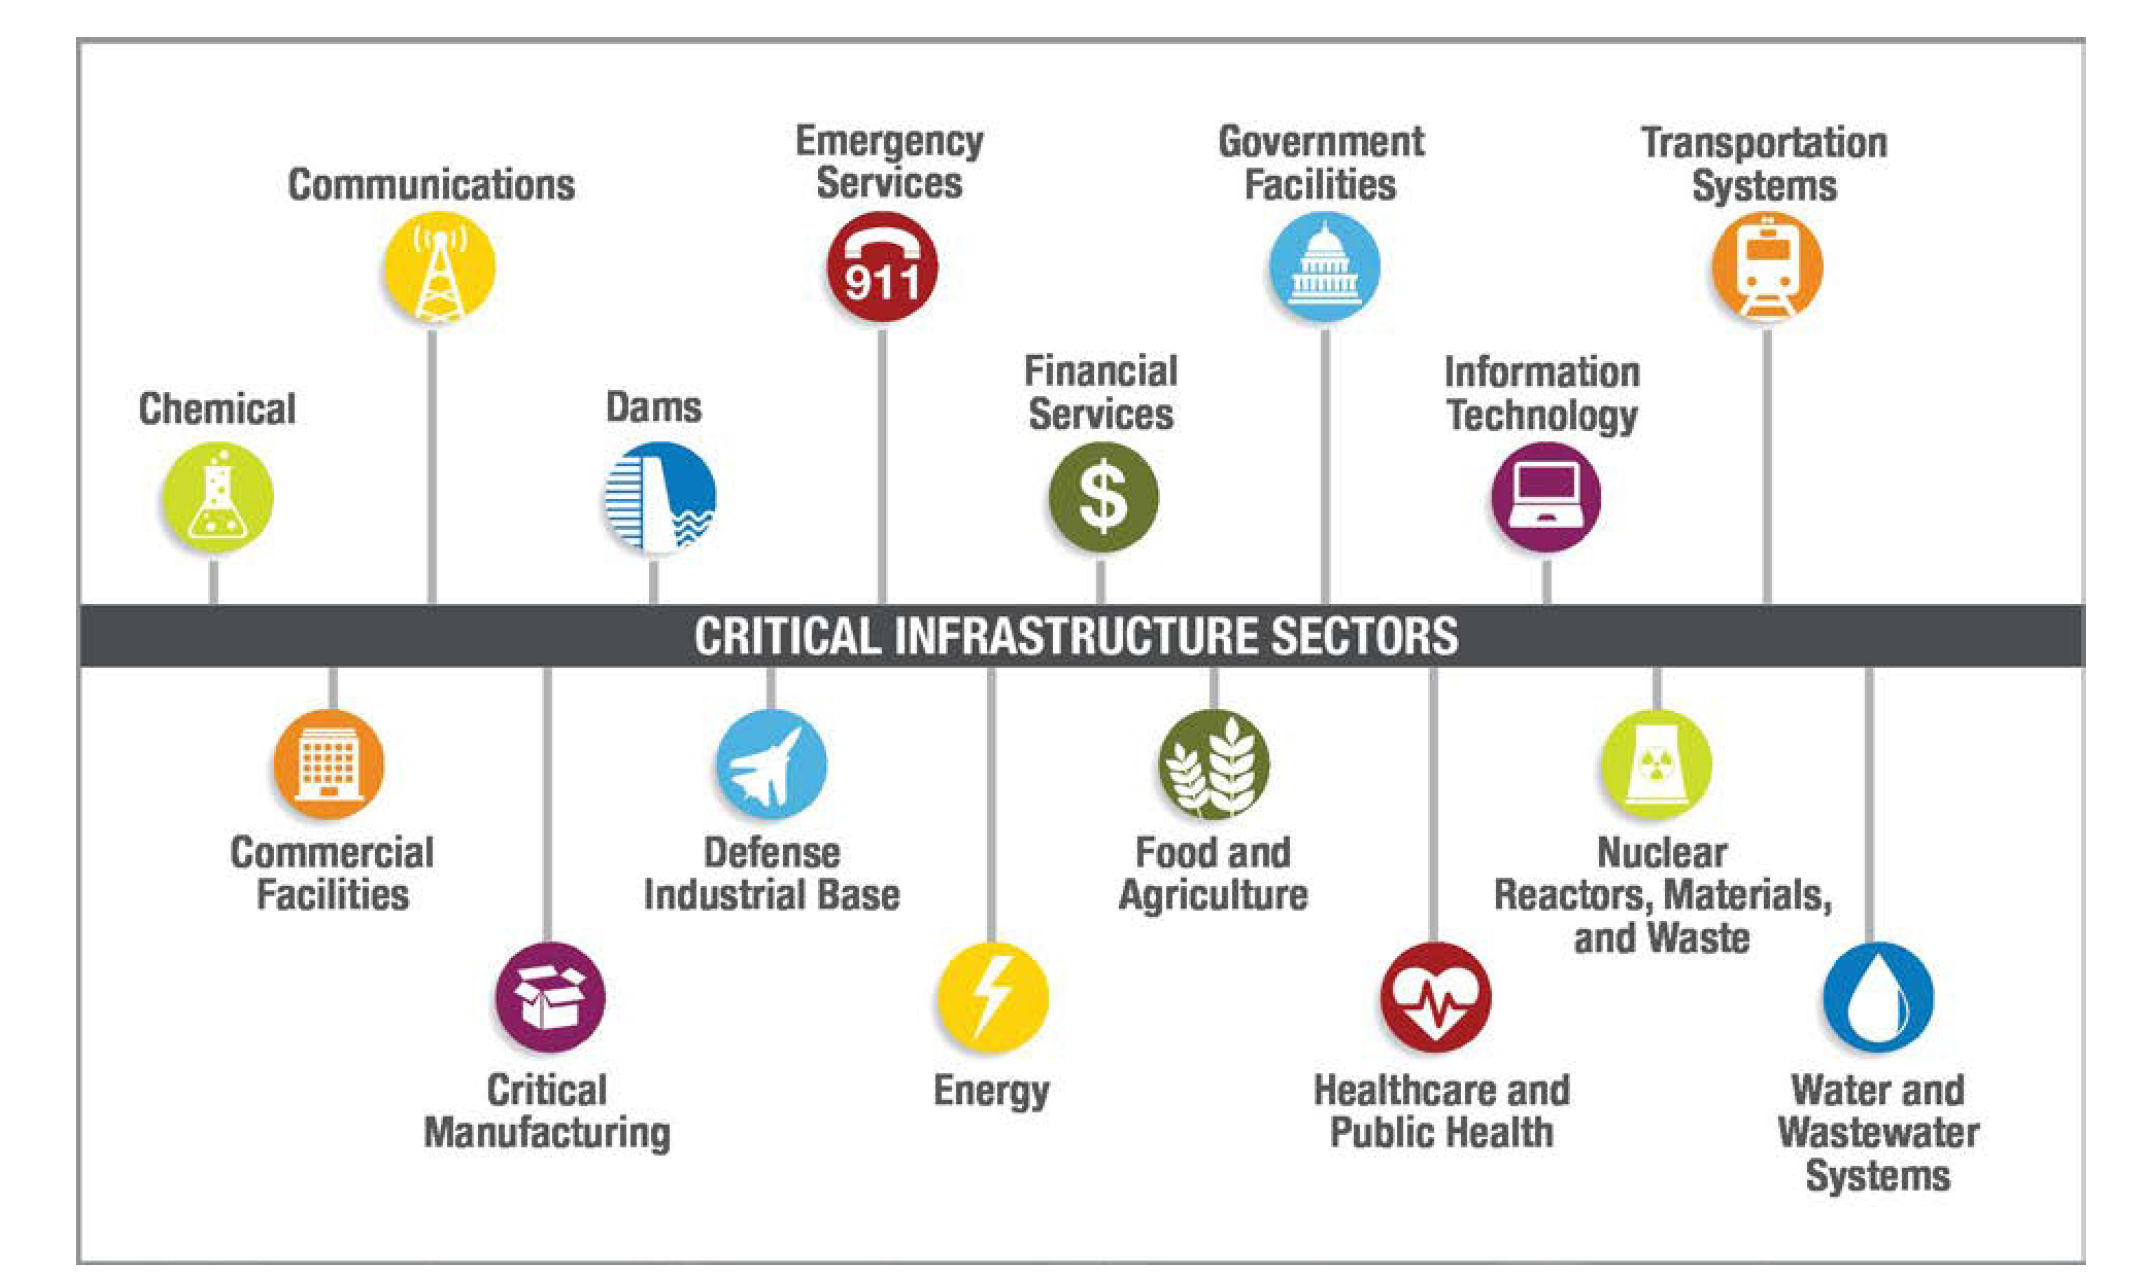 The 16 critical infrastructure systems identified by the Department of Homeland Security